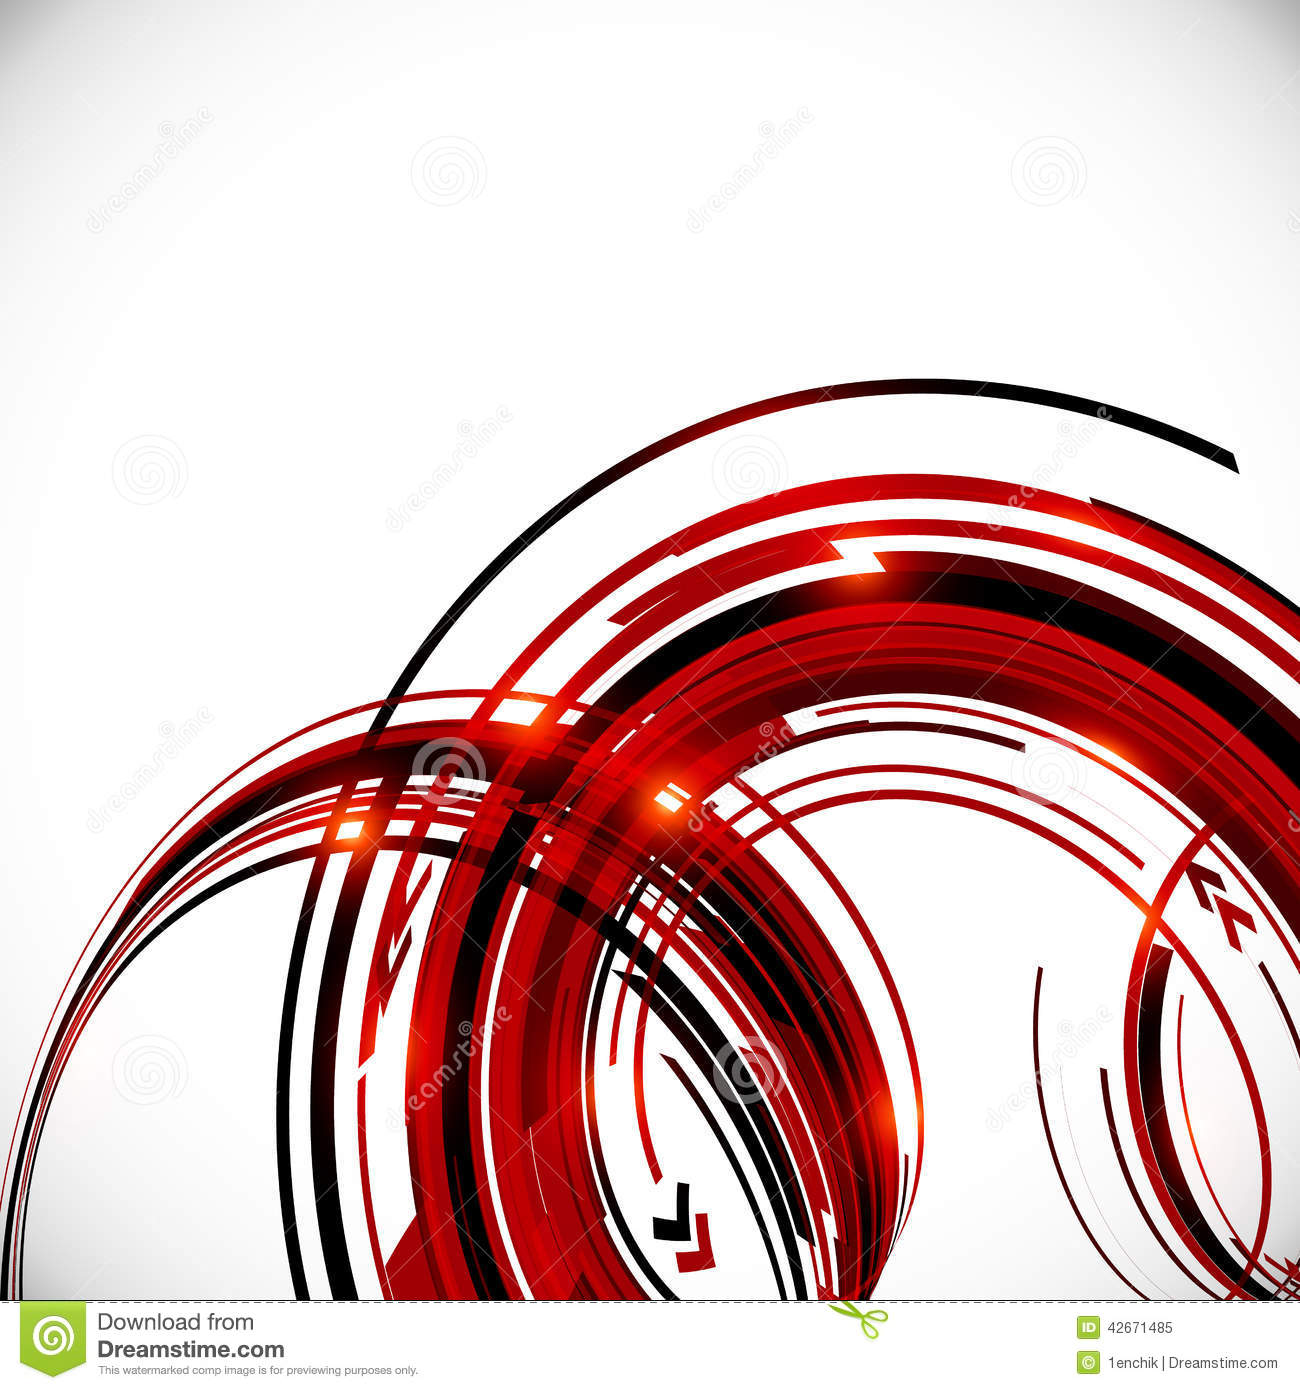 Abstract Red And Black Circles Background Stock Vector ...